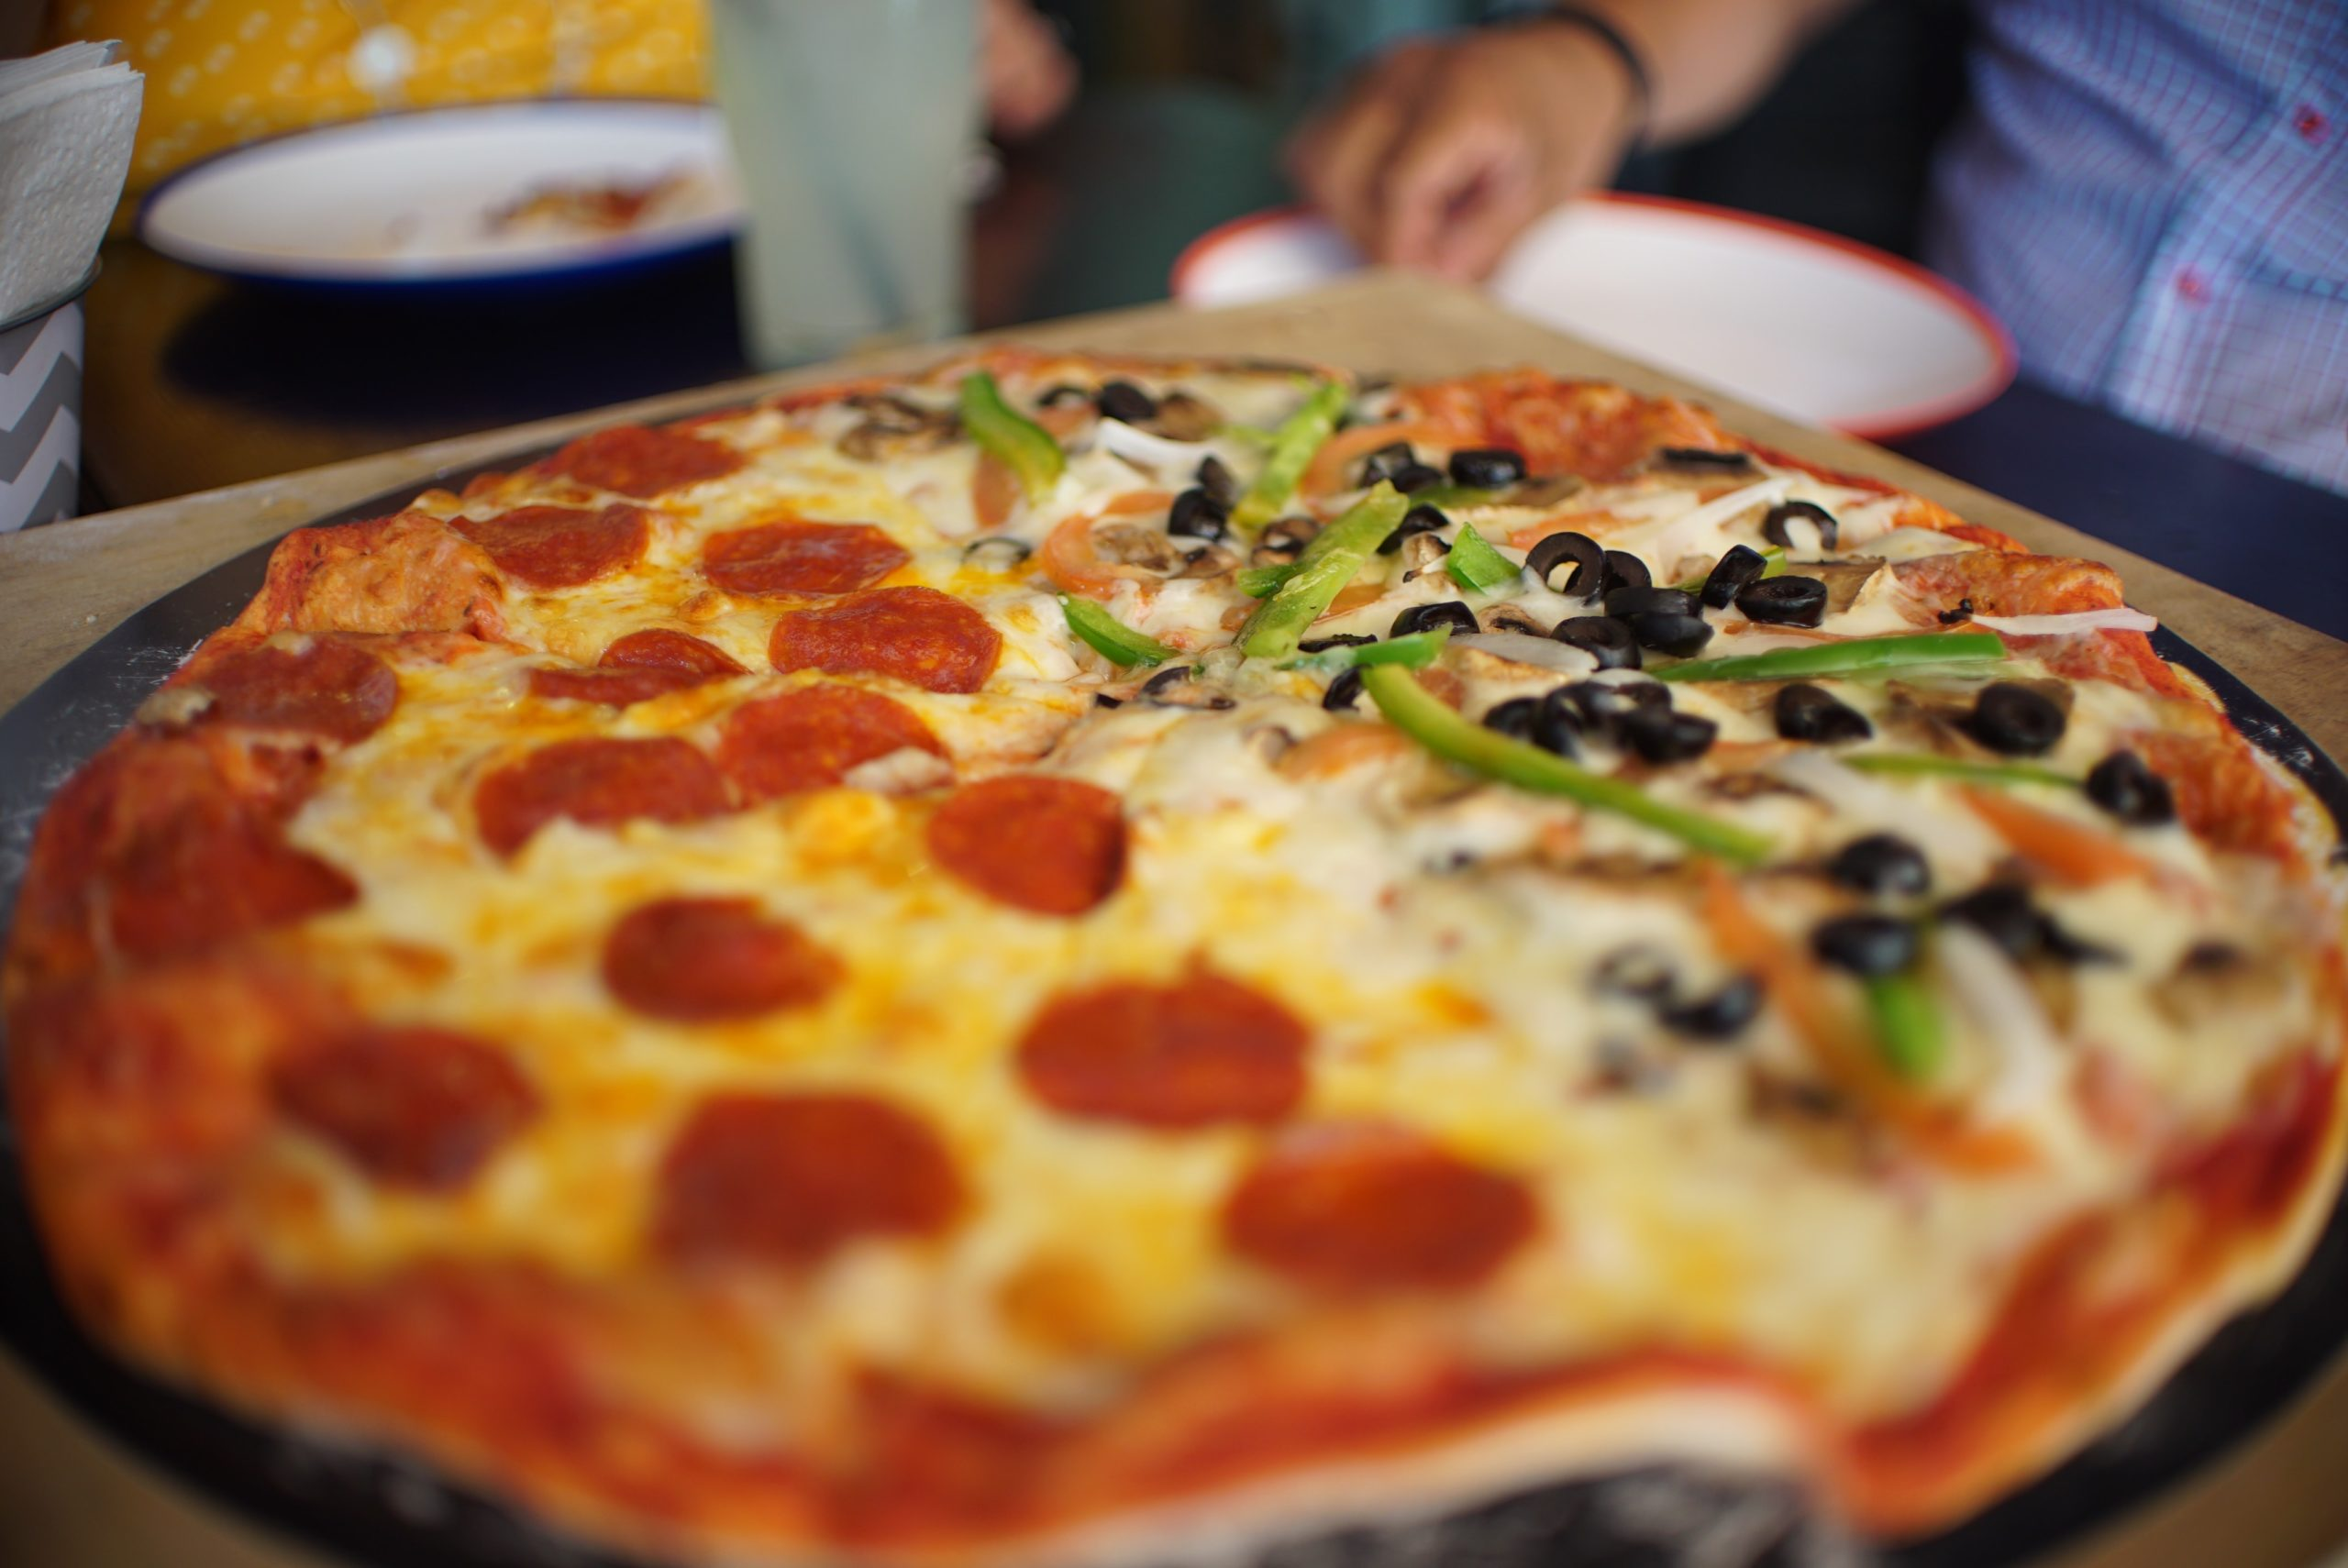 5 Reasons You Should Order Pizza With Your Friends